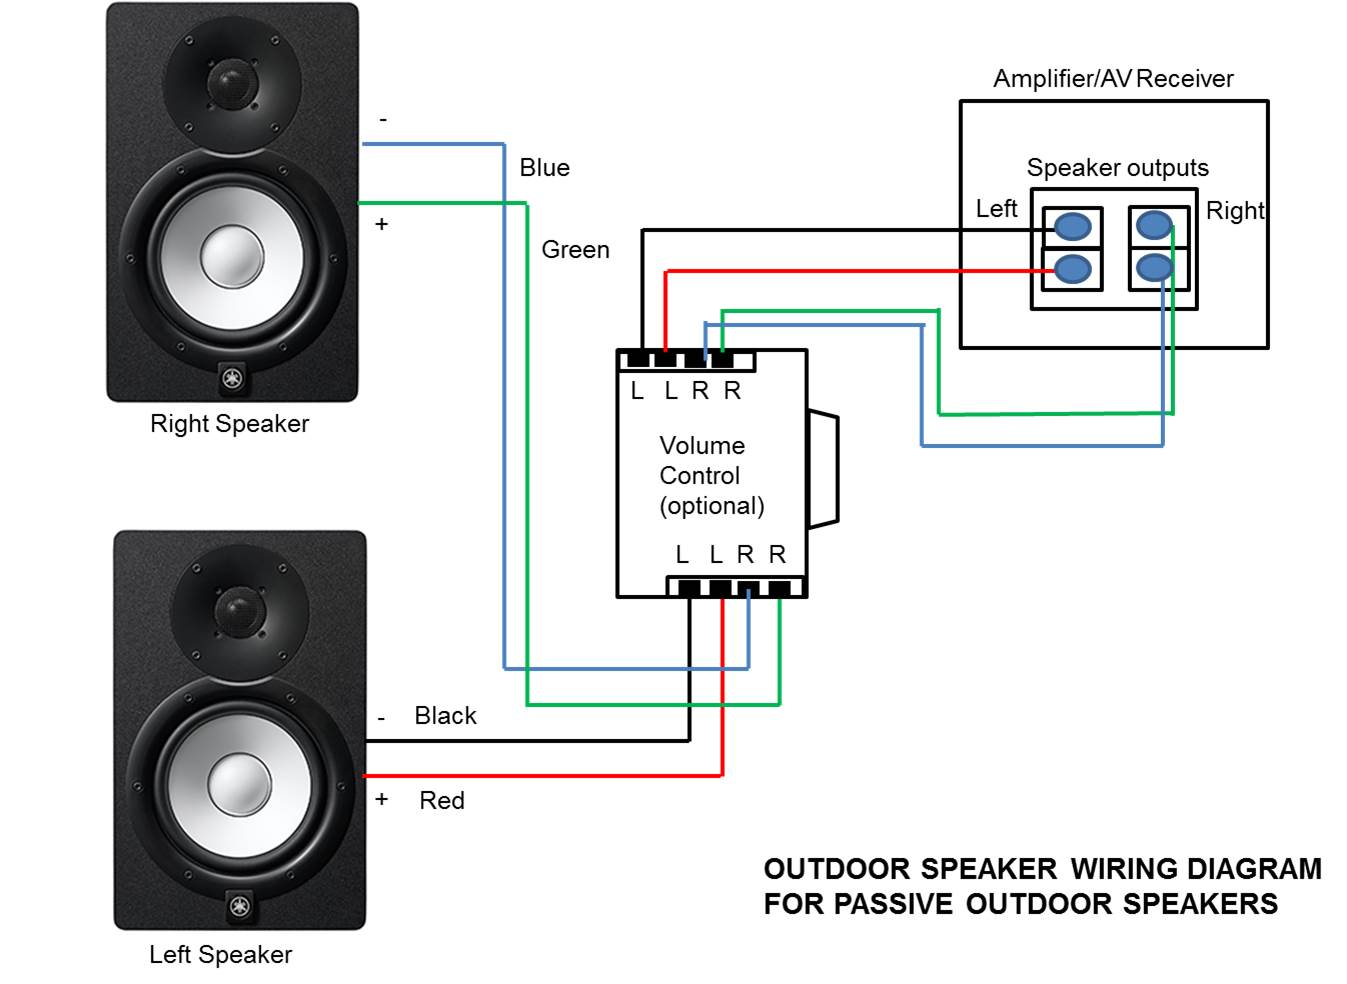 wiring diagram car audio speakers arlec ceiling fan with light 321 bose home theater